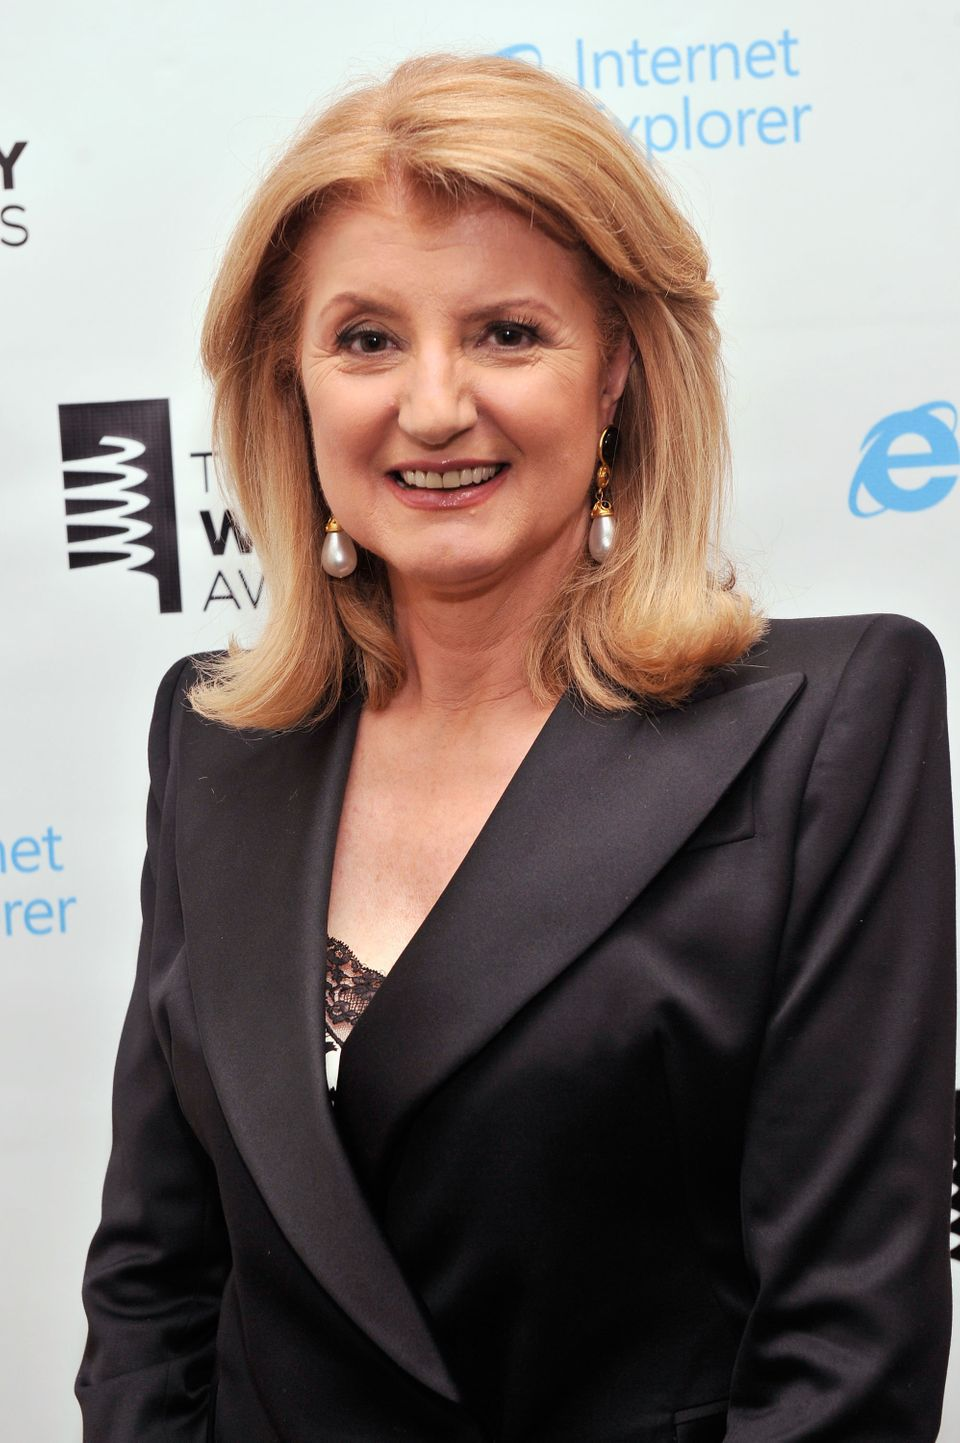 "<a href=""http://www.huffingtonpost.com/arianna-huffington/"" target=""_blank"">Arianna Huffington</a>, President And Editor-In-C"